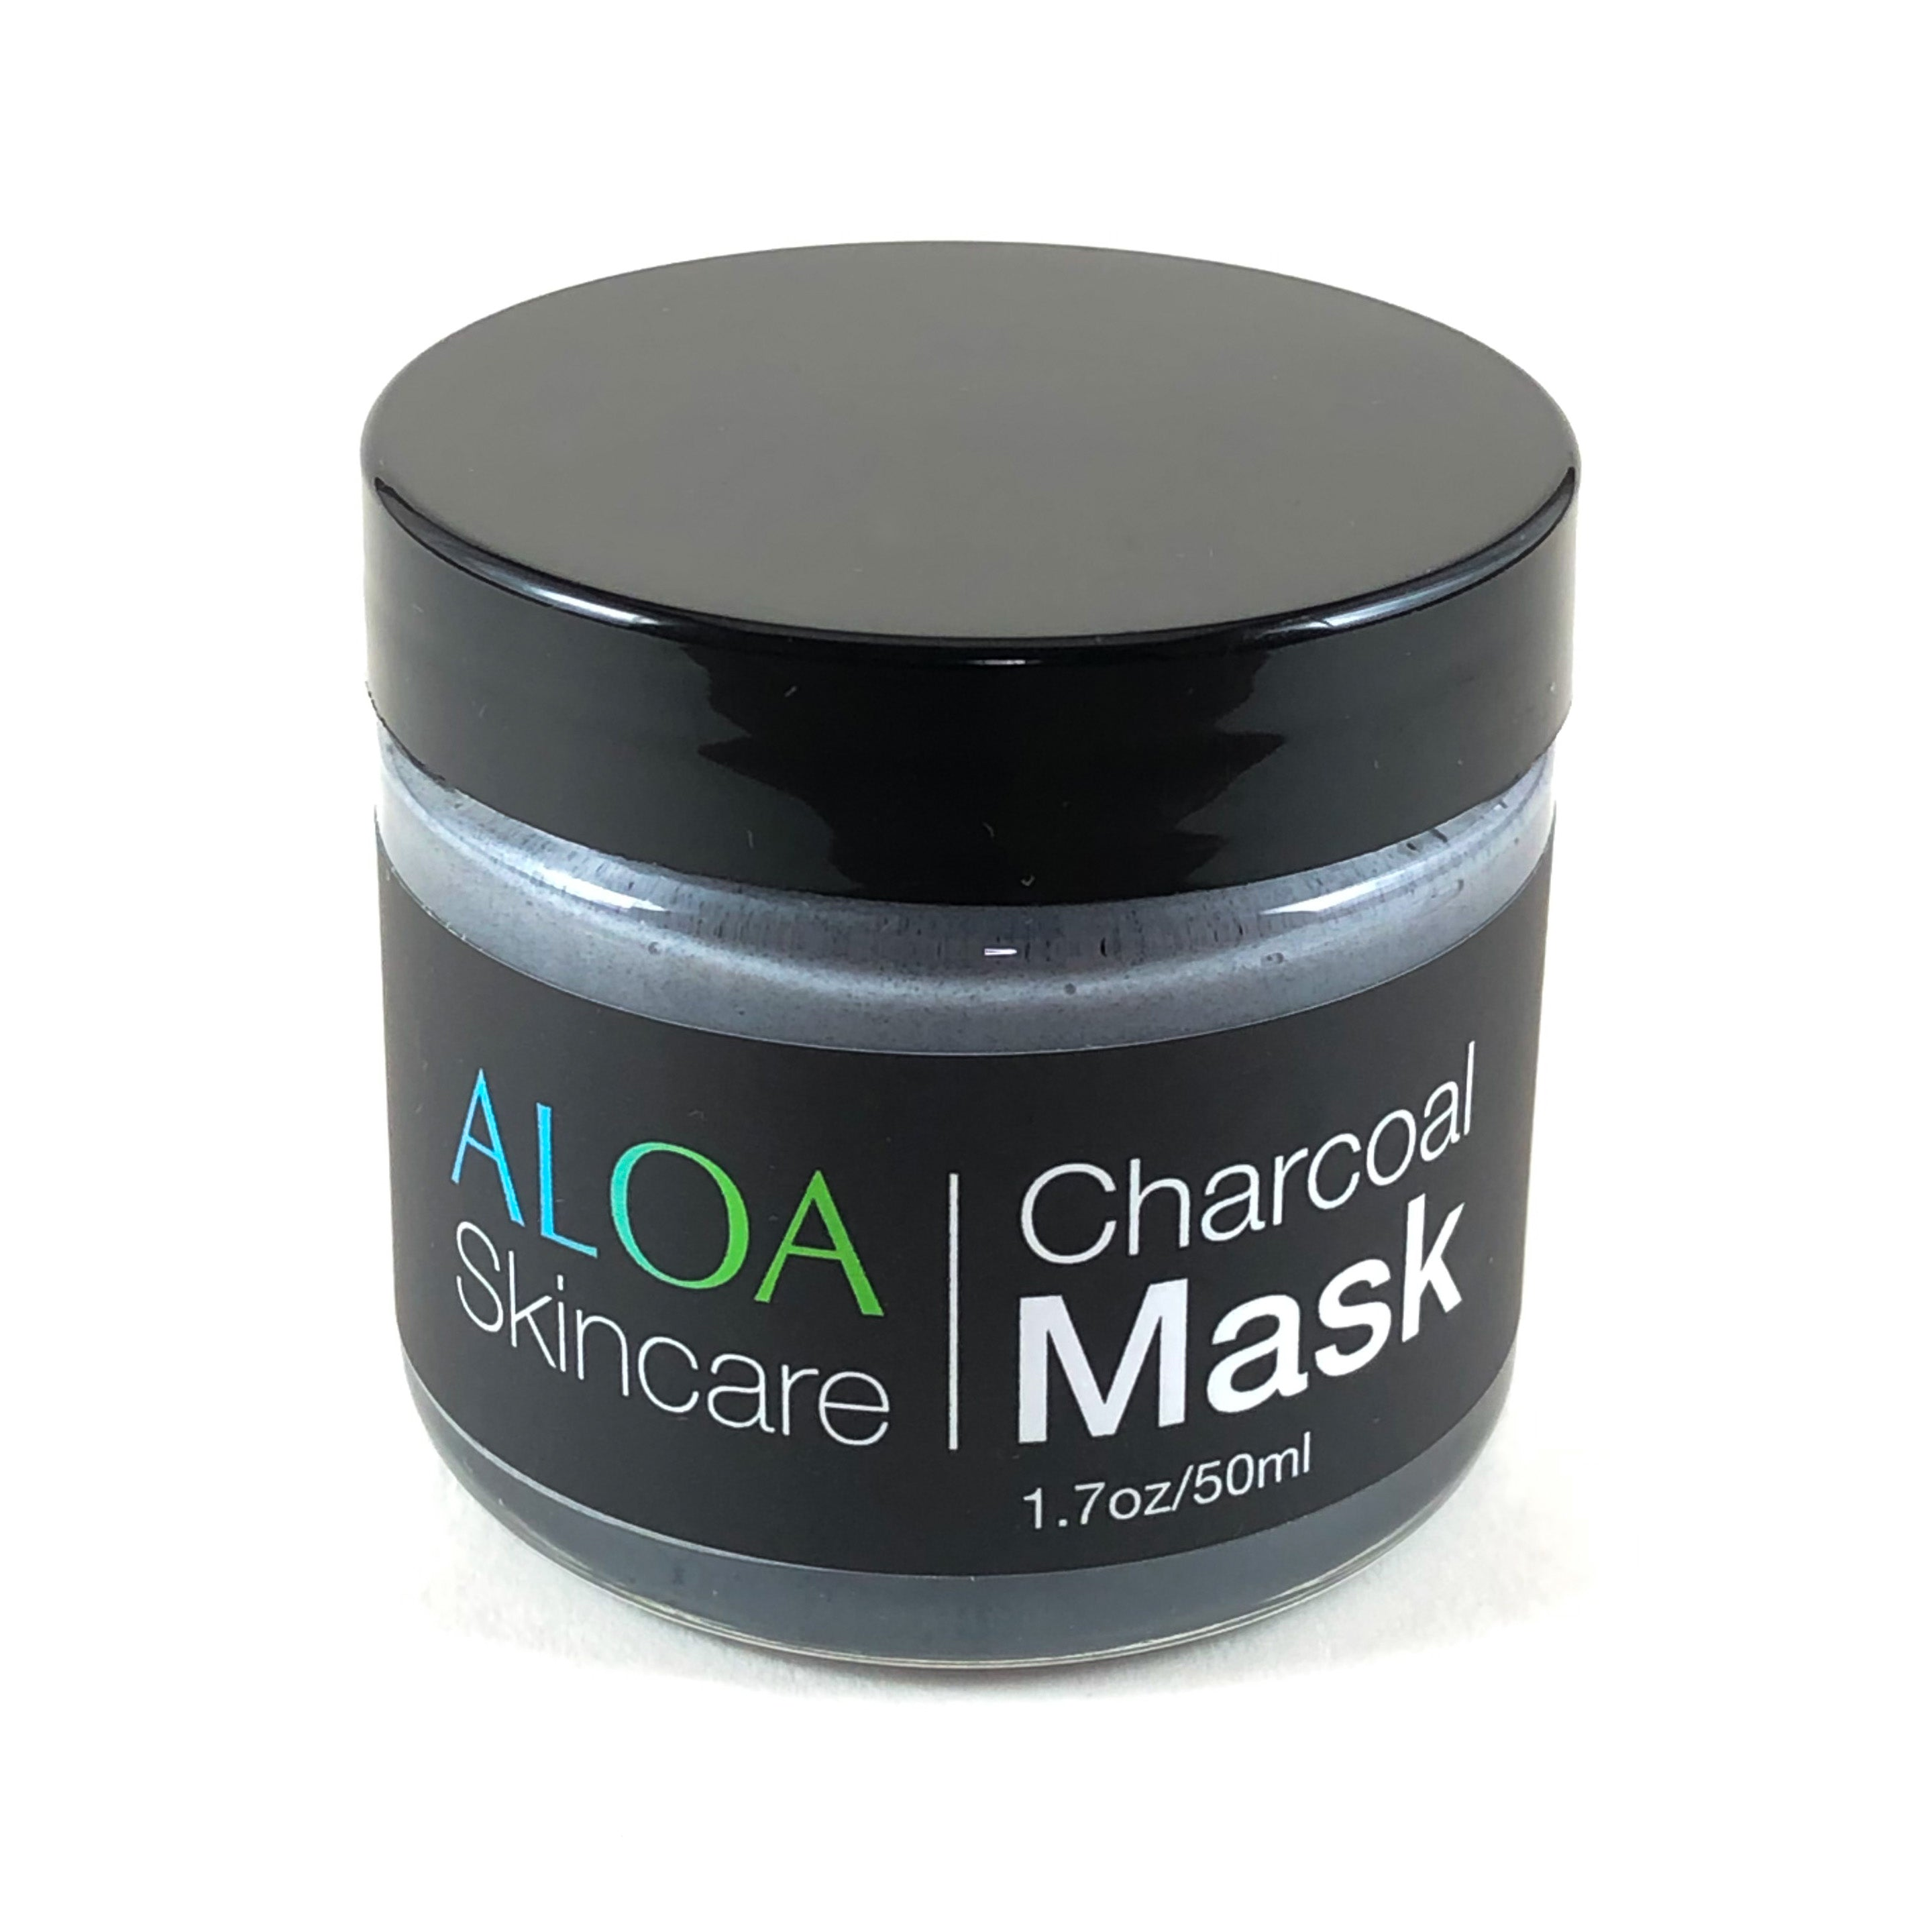 ALOA Skincare Activated Charcoal & Clay Face Mask for deep pore cleaning, detox and exfoliation - ALOA Skincare